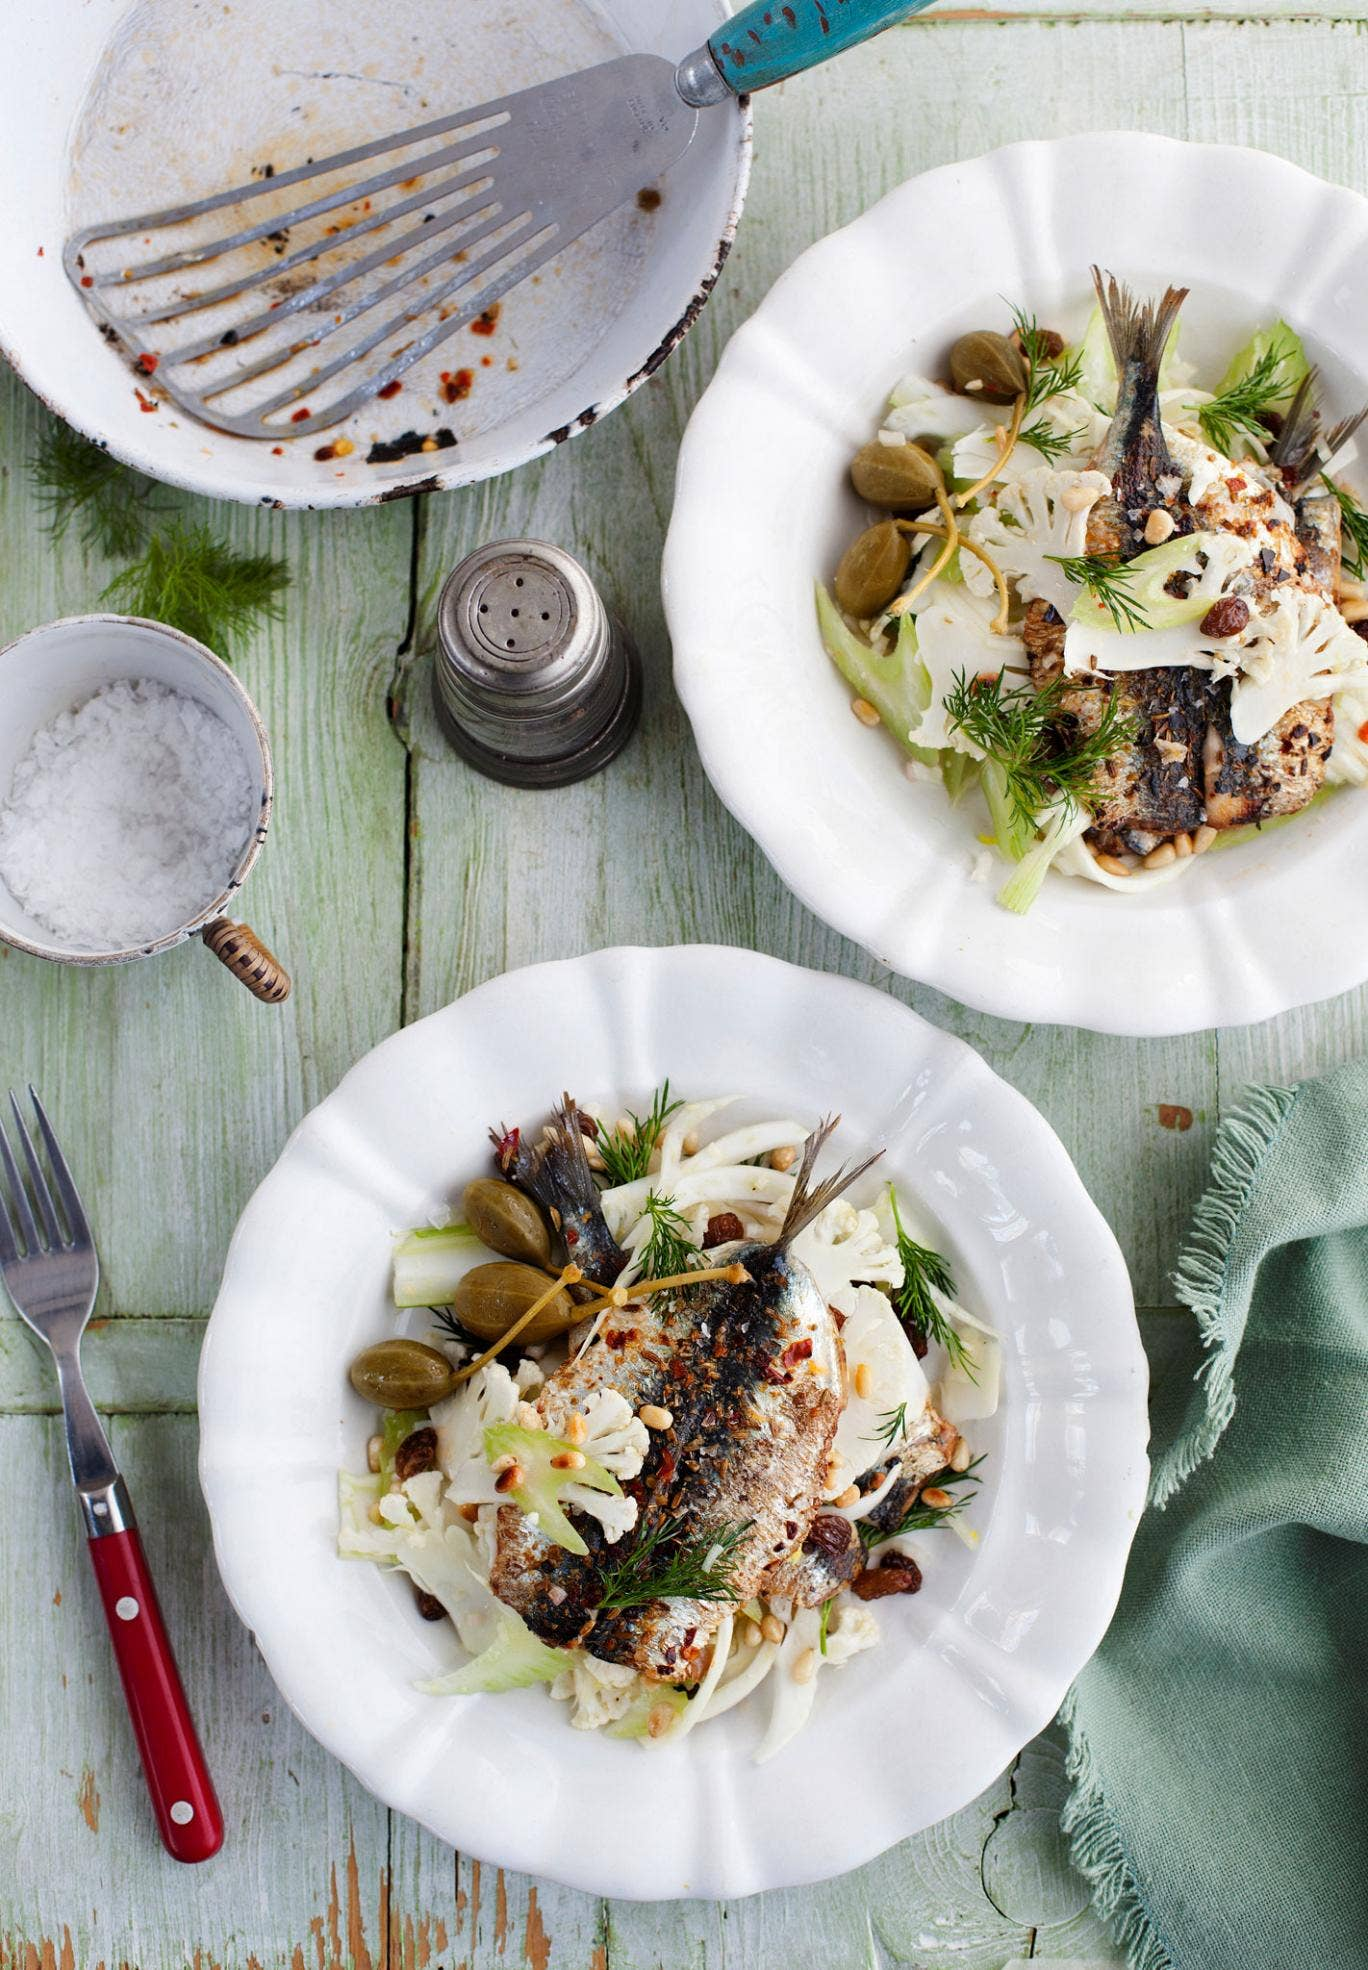 Bill recreates the Sicilian way of life with a sardine, cauliflower and fennel salad